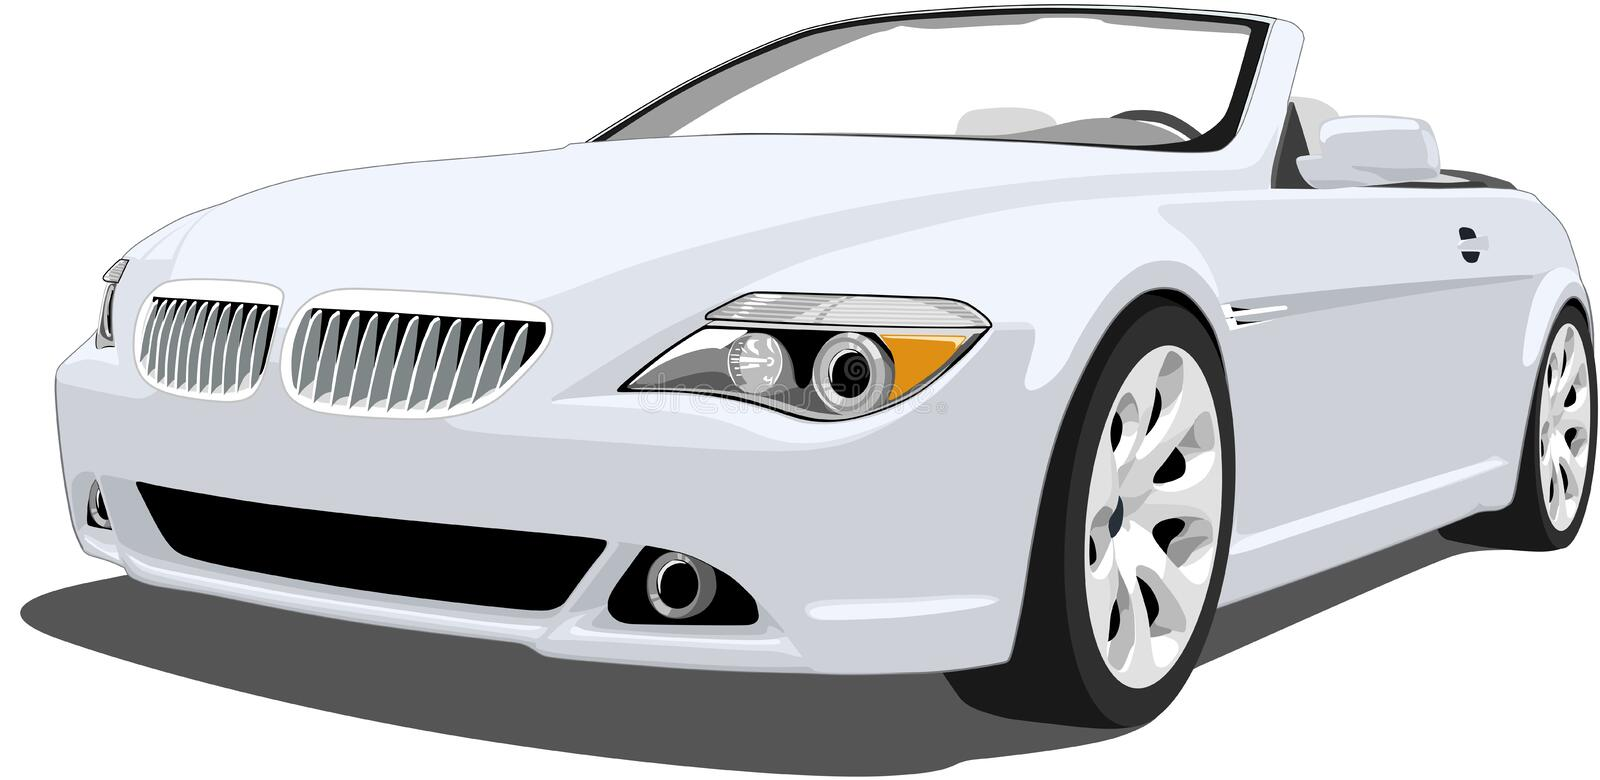 Bmw M6 Convertible. A Vector . eps illustration of a BMW M6 Convertible. Saved in layers for easy editing. See my portfolio for more automotive images royalty free illustration